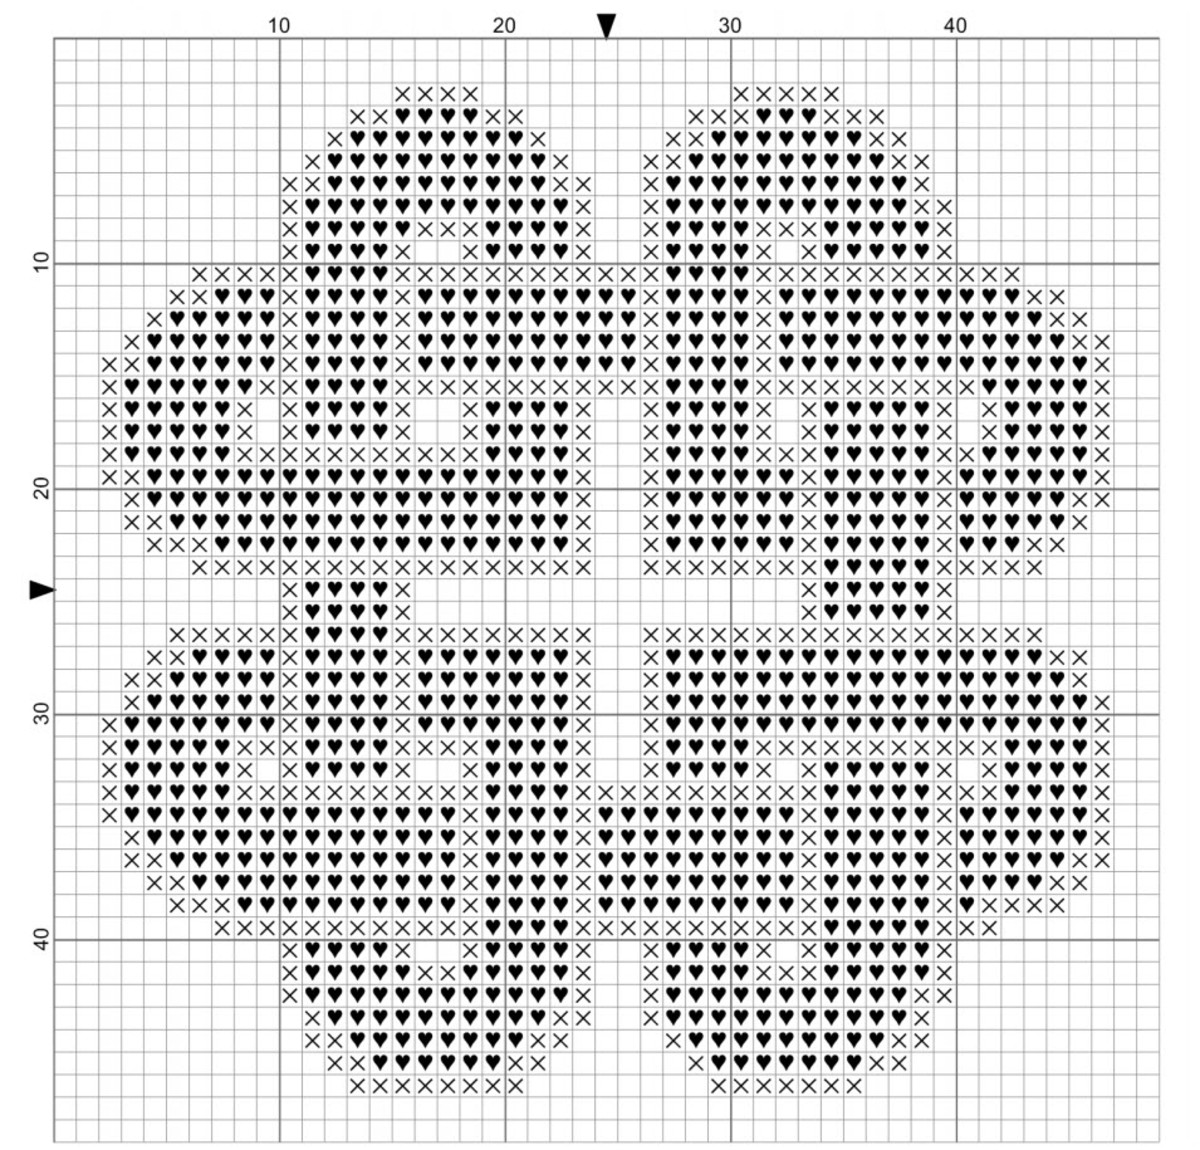 Full Knotted Hearts Cross Stitch Pattern